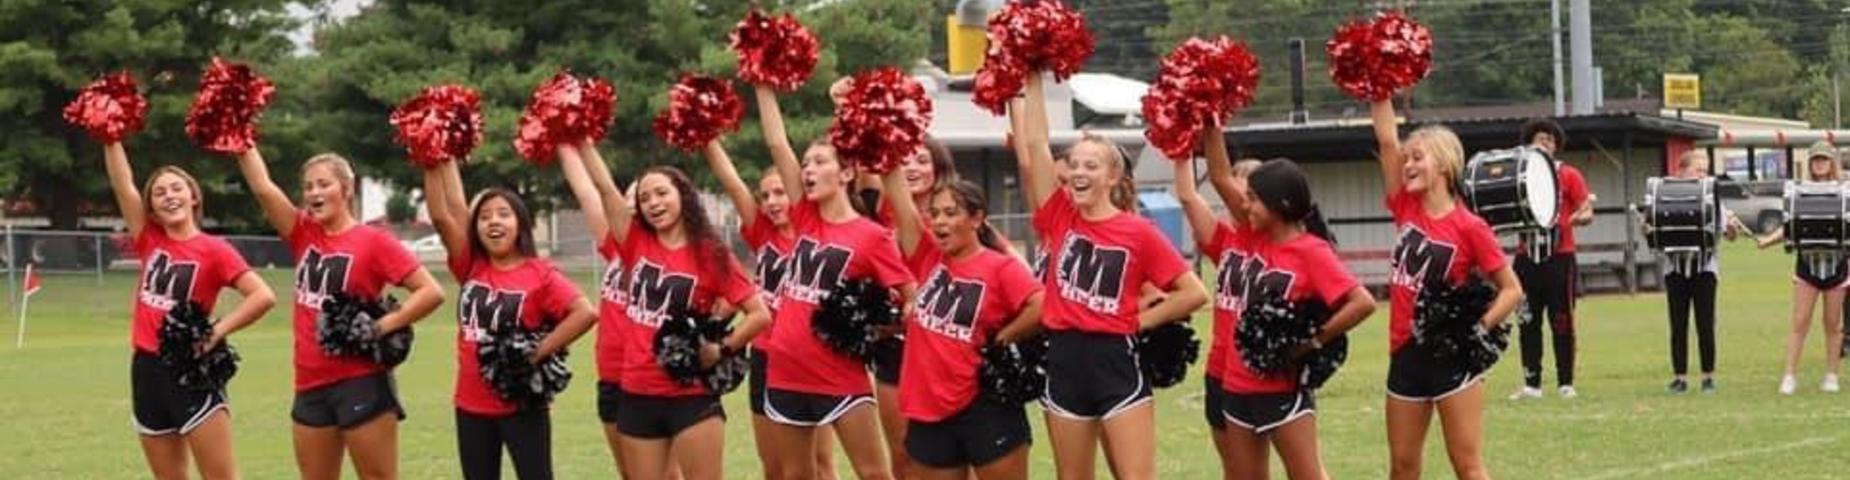 MHS Cheerleaders getting ready for the big game! Battle of the Birds!